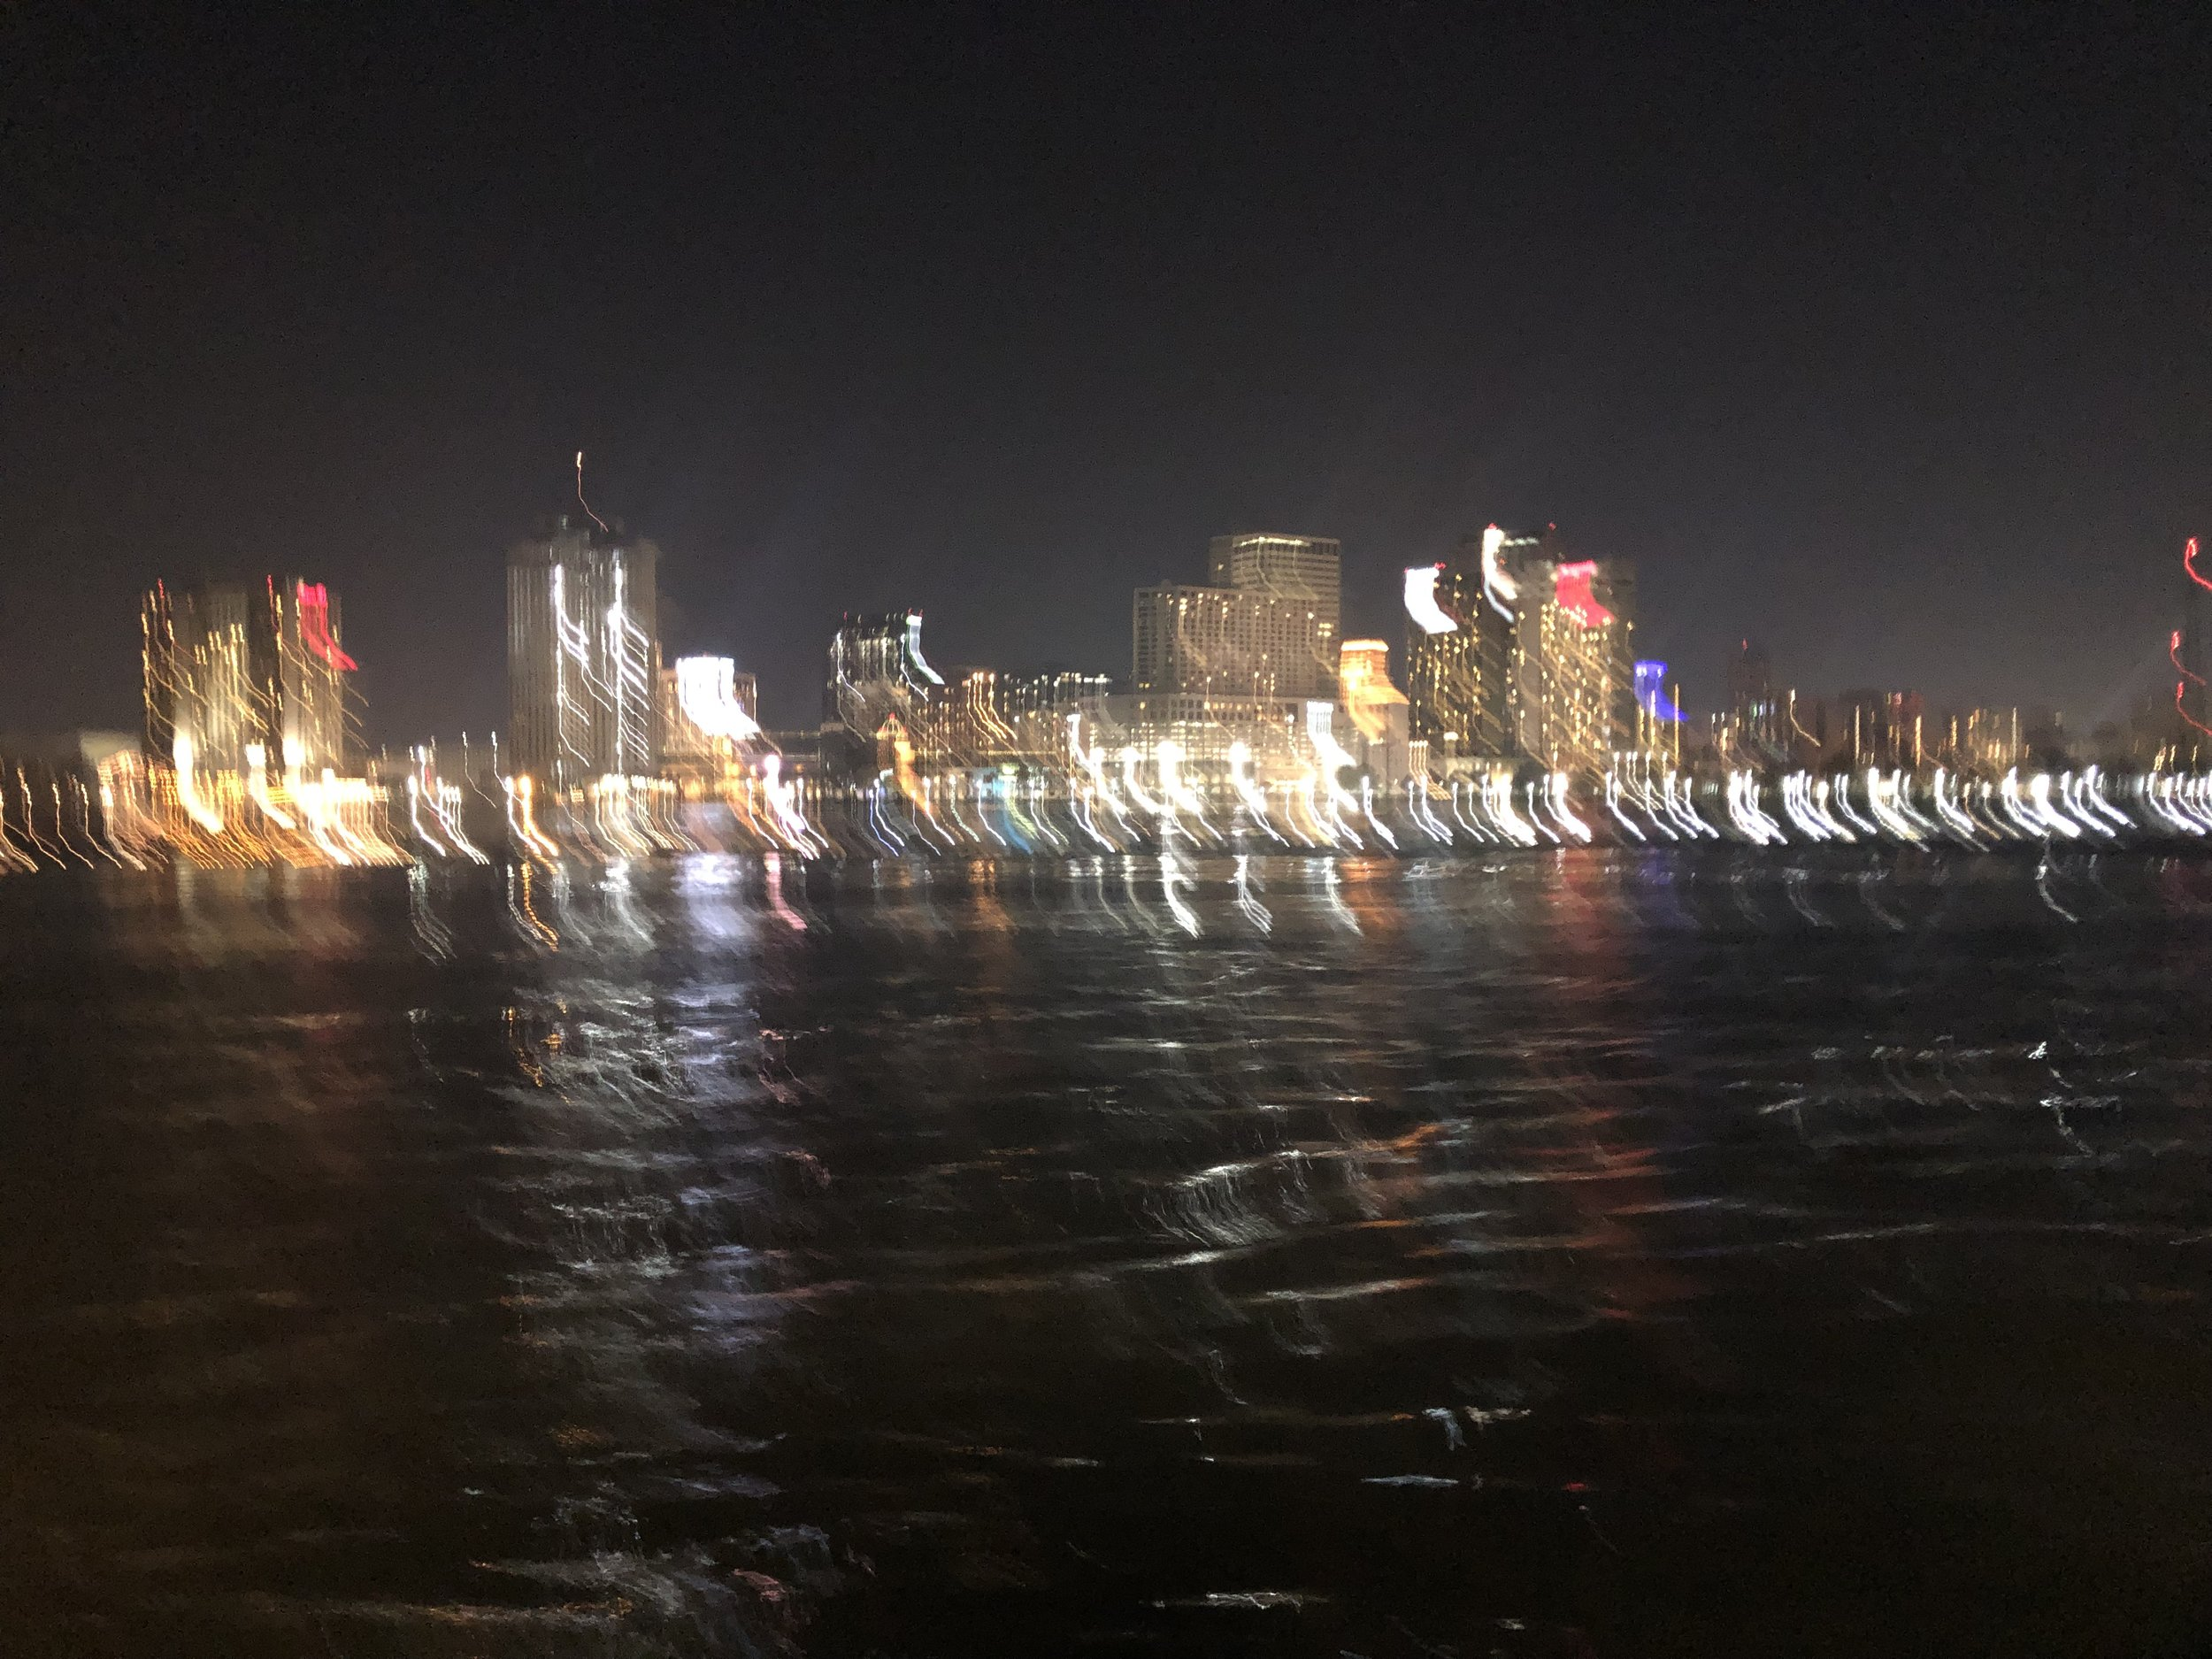 blurry photo of Nighttime New Orleans, taken from the Ferry returning from Algiers.